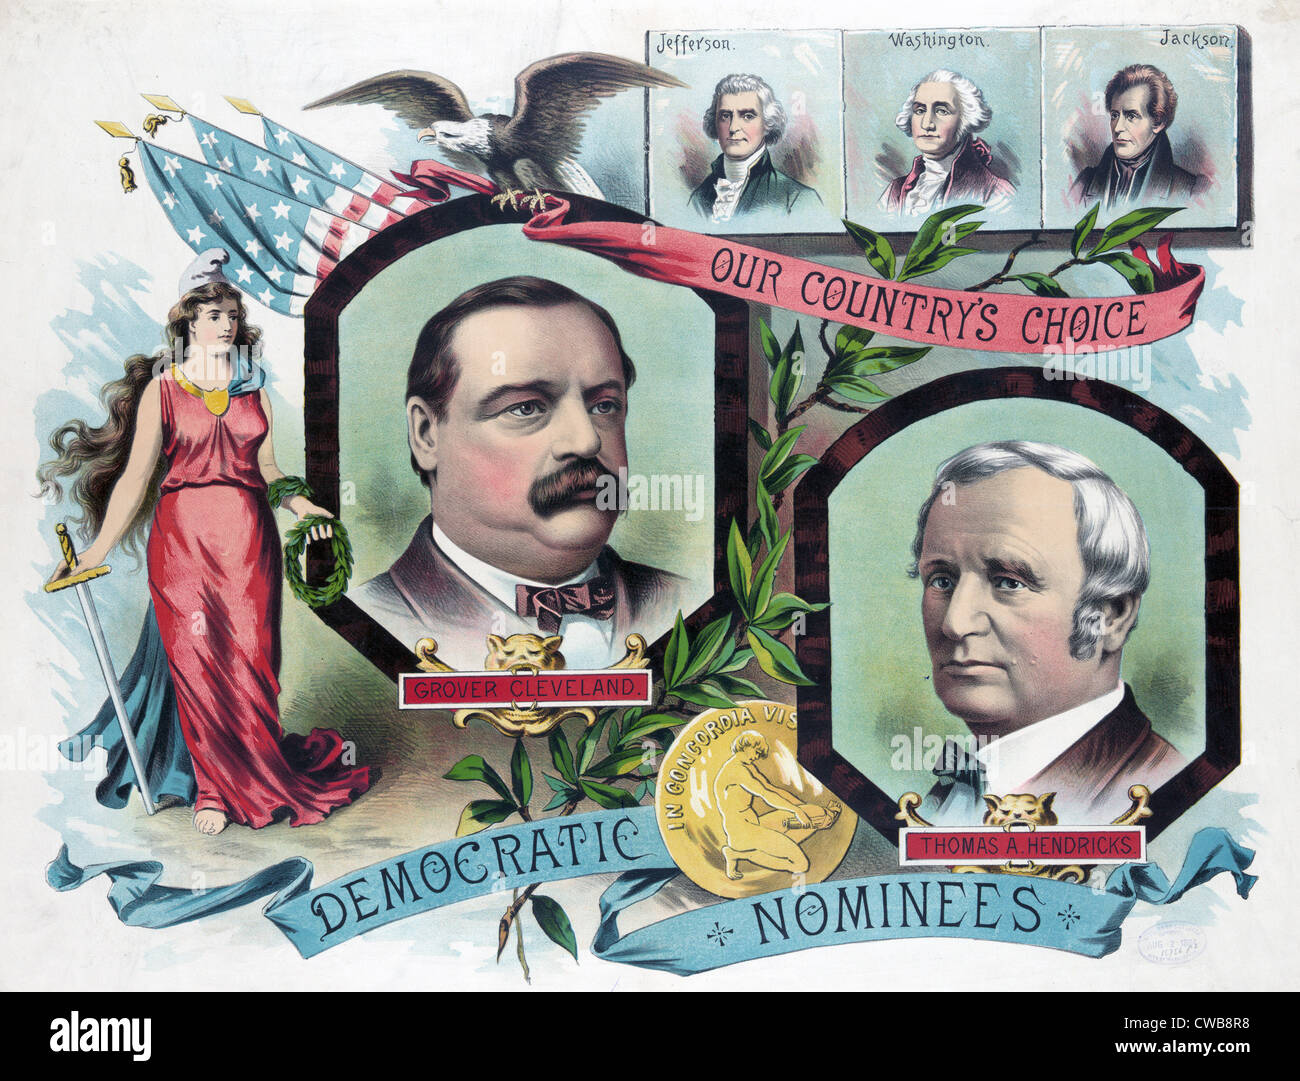 Grover Cleveland, Thomas A. Hendricks, the democratic candidates for president in 1884 Stock Photo